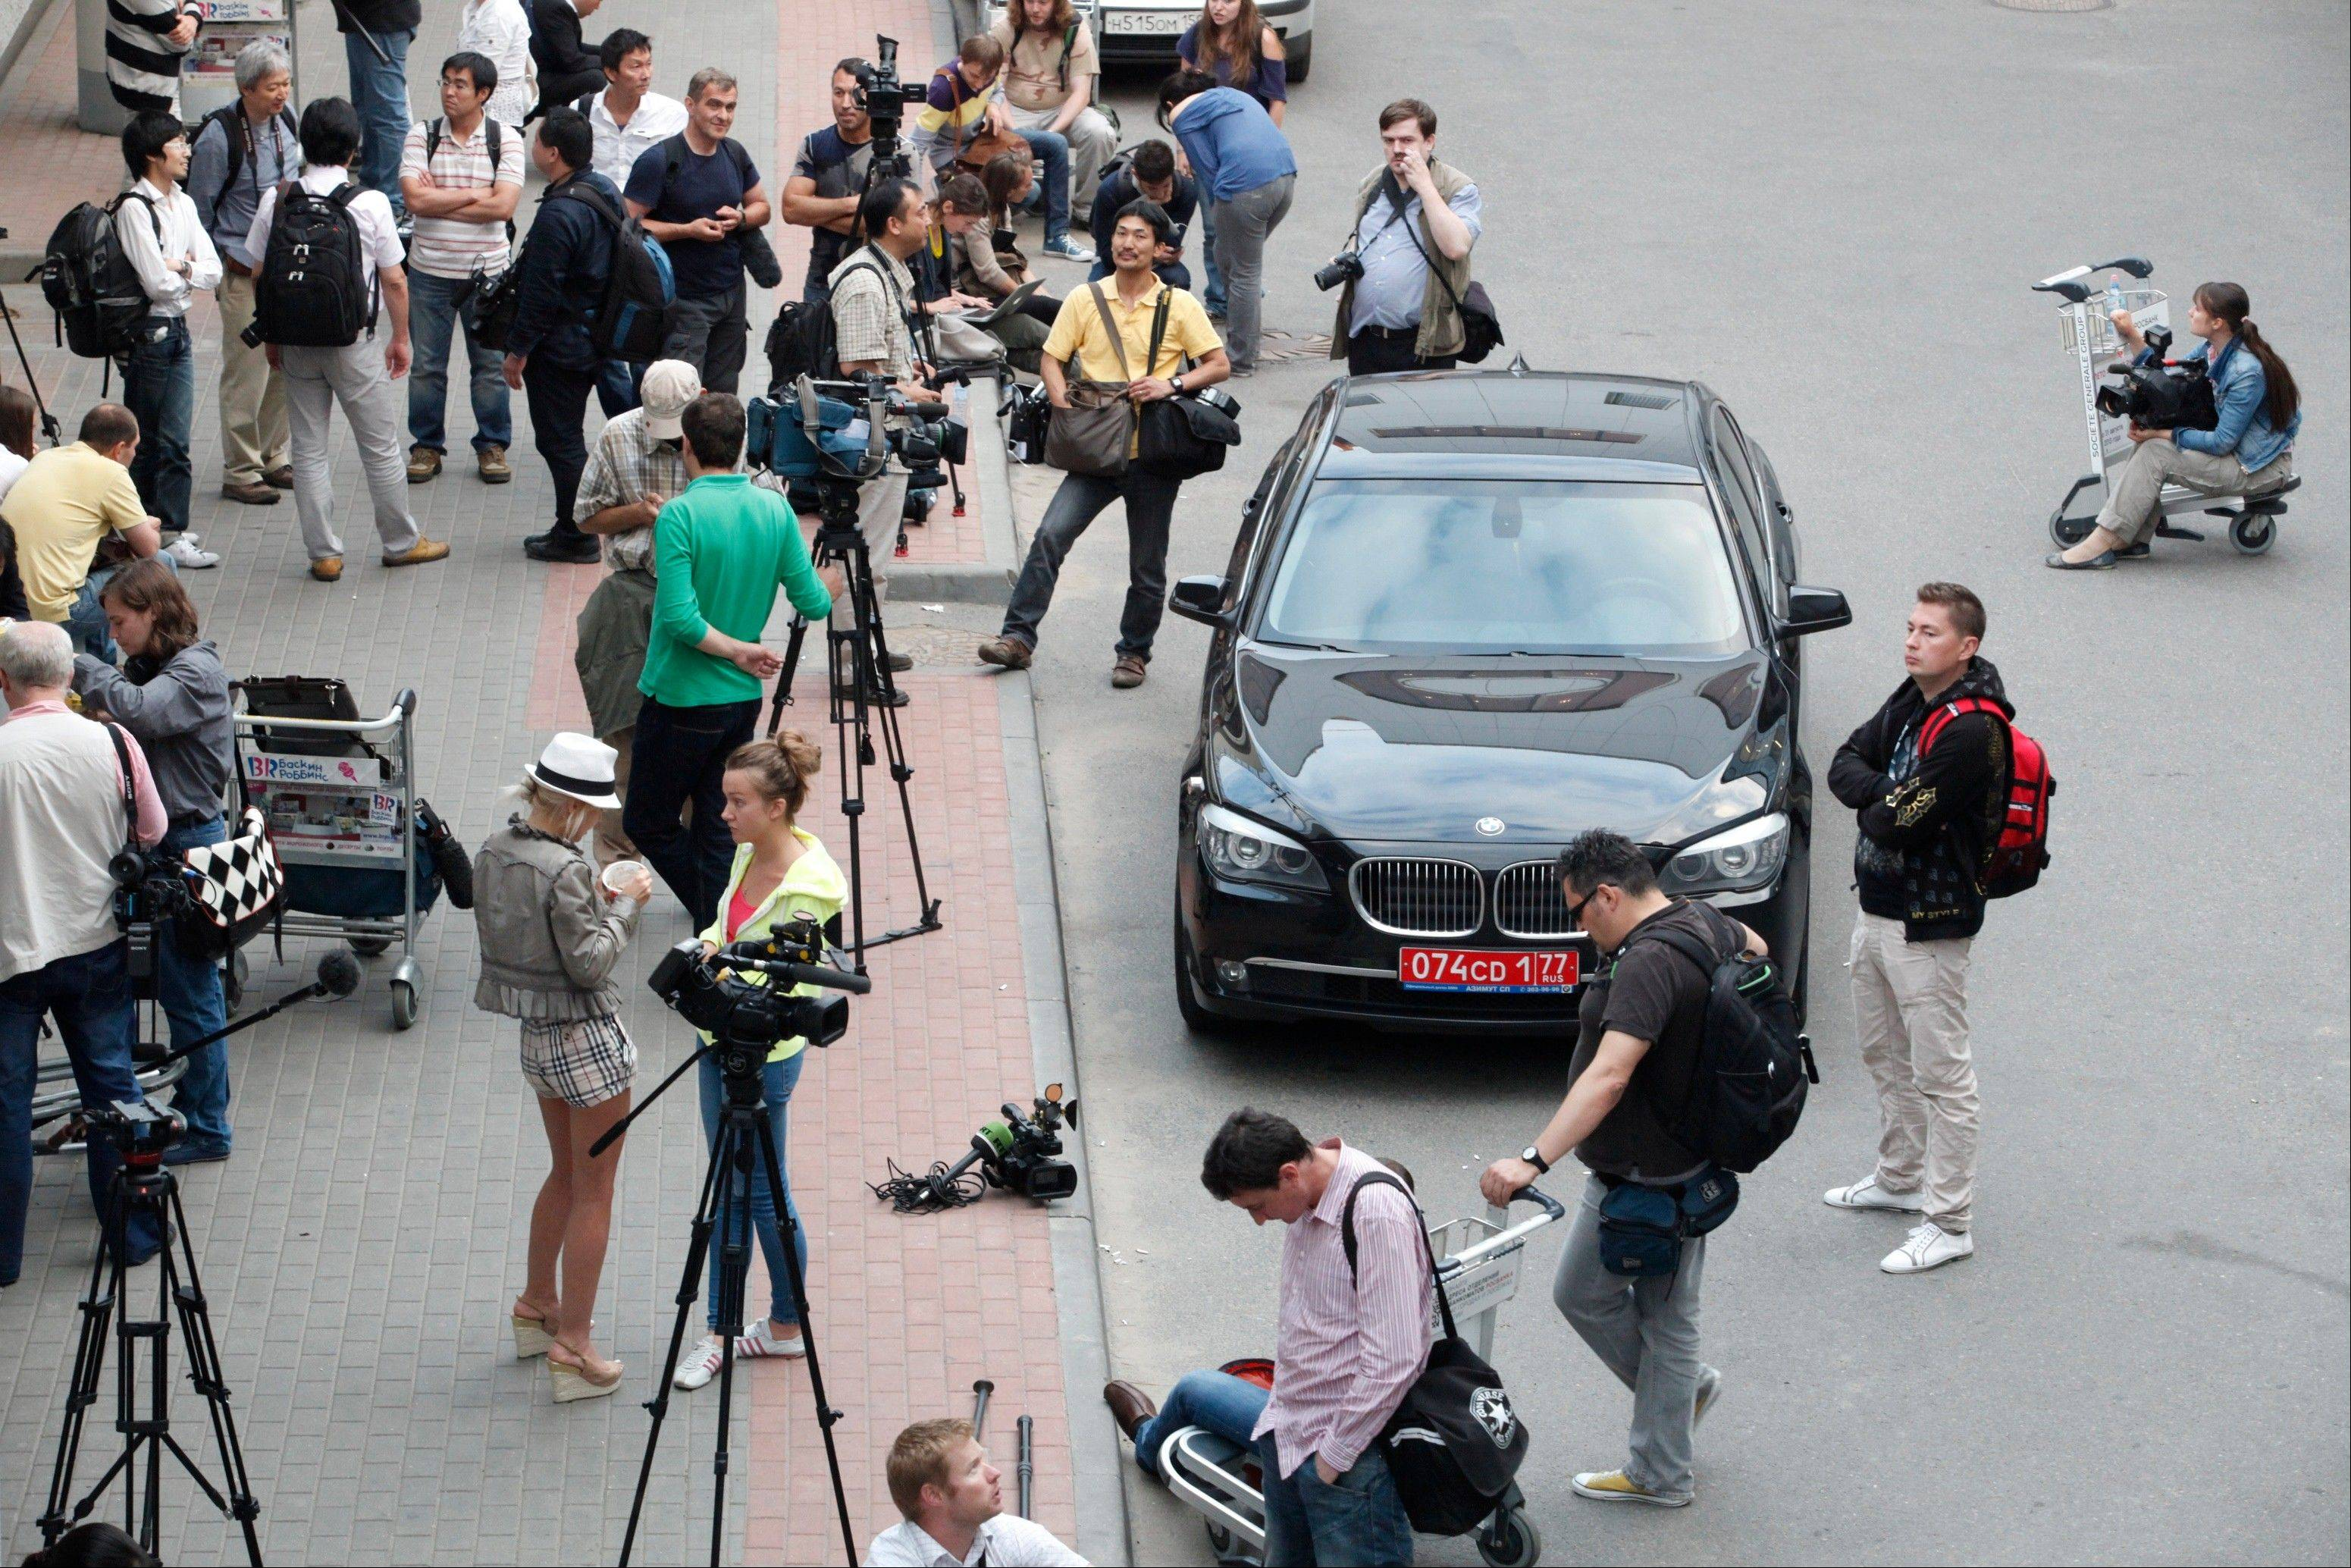 Journalists stand next to Ecuador�s Ambassador�s car while waiting for the arrival of Edward Snowden, a former CIA employee who recently leaked top-secret documents about sweeping U.S. surveillance programs, at Sheremetyevo airport, just outside Moscow, Russia, Sunday,